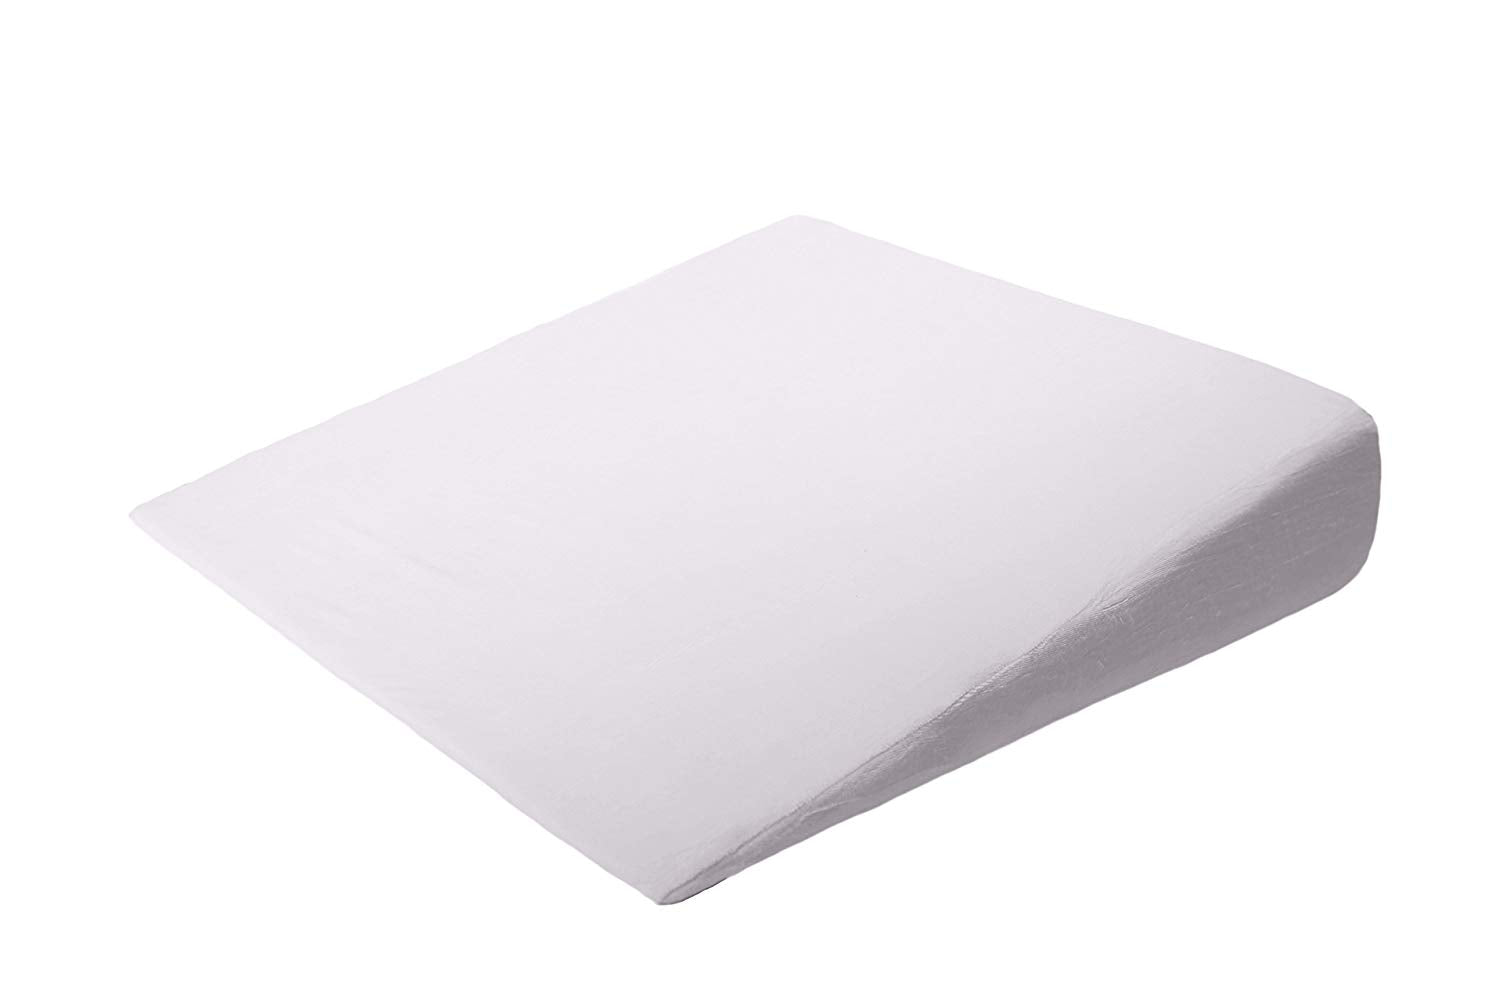 Wedge Pillow - Helps with Acid Reflux, RLS, and Back Pain